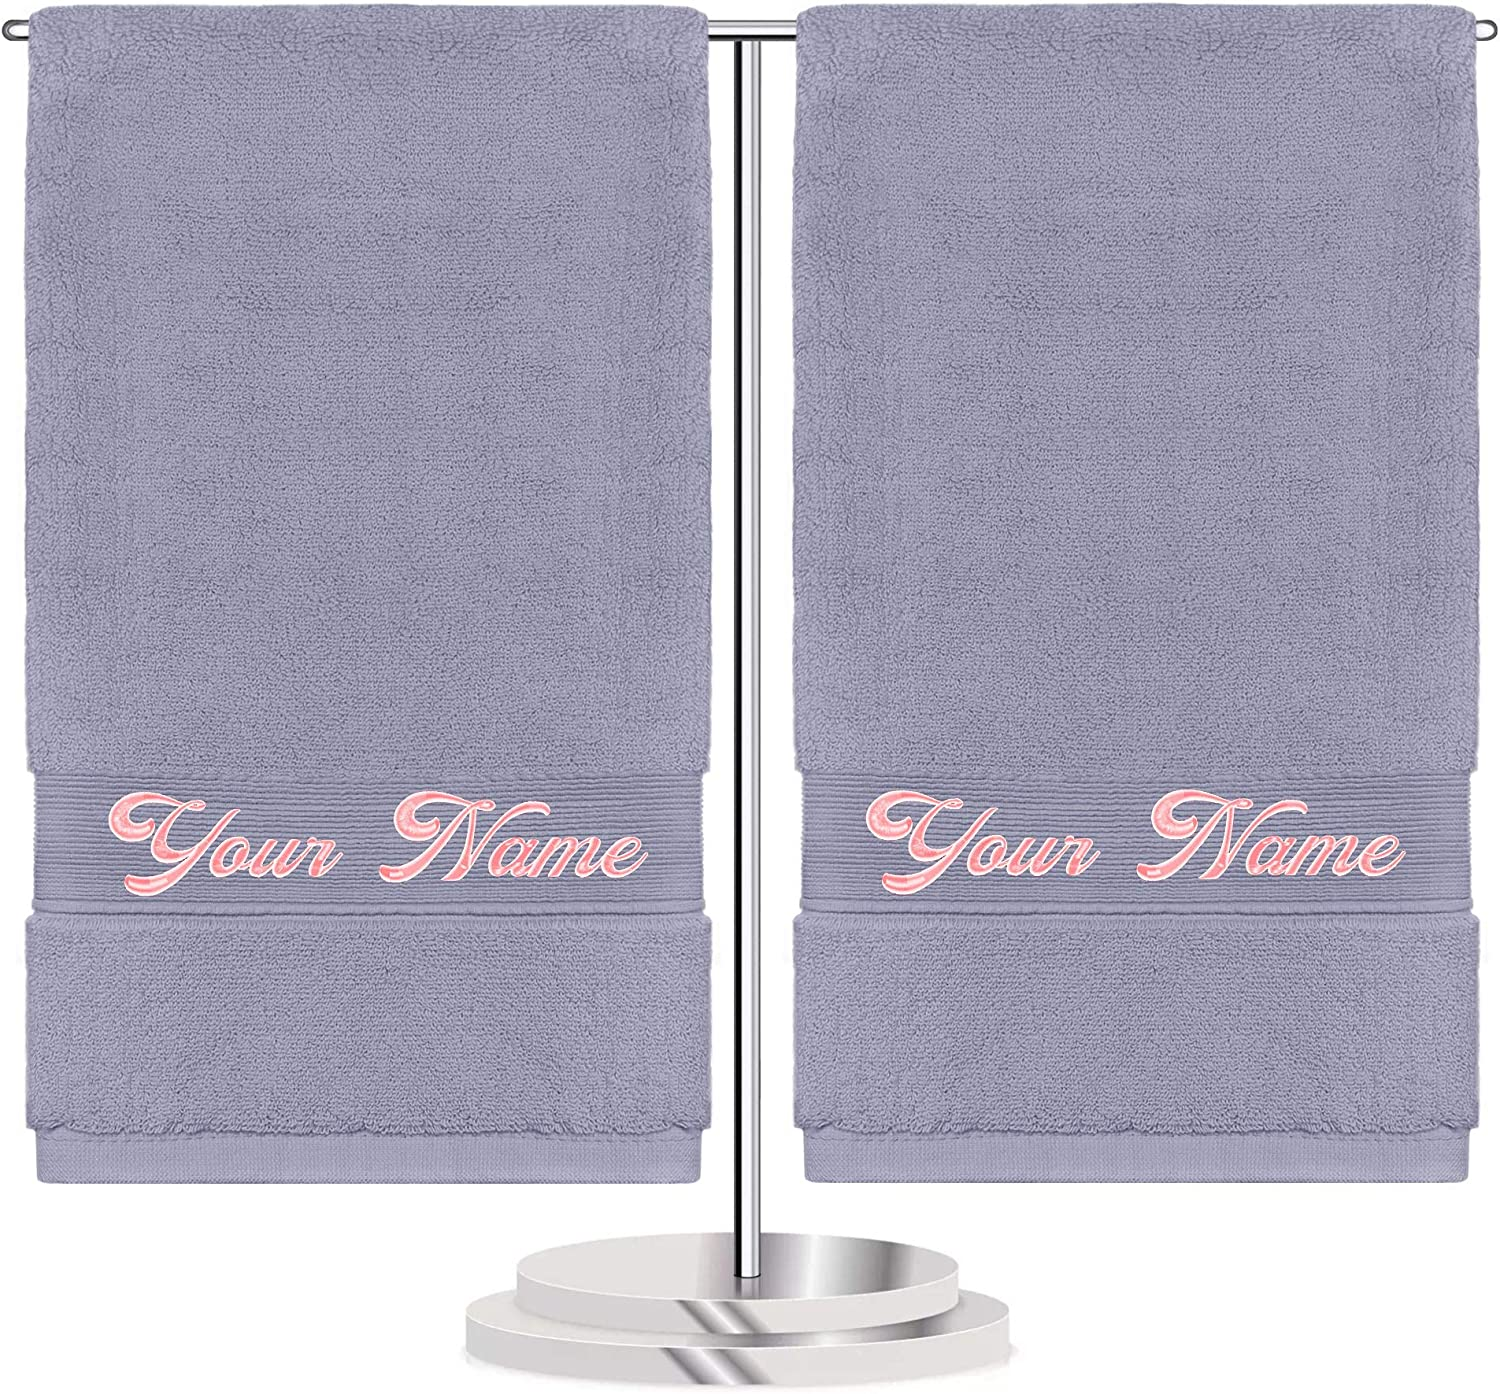 Monogrammed Towels,Personalized Embroidered Hand Towels for Bathroom Custom Towels Set Gift Customized Embroidery Name & Logo Towels (Gray)